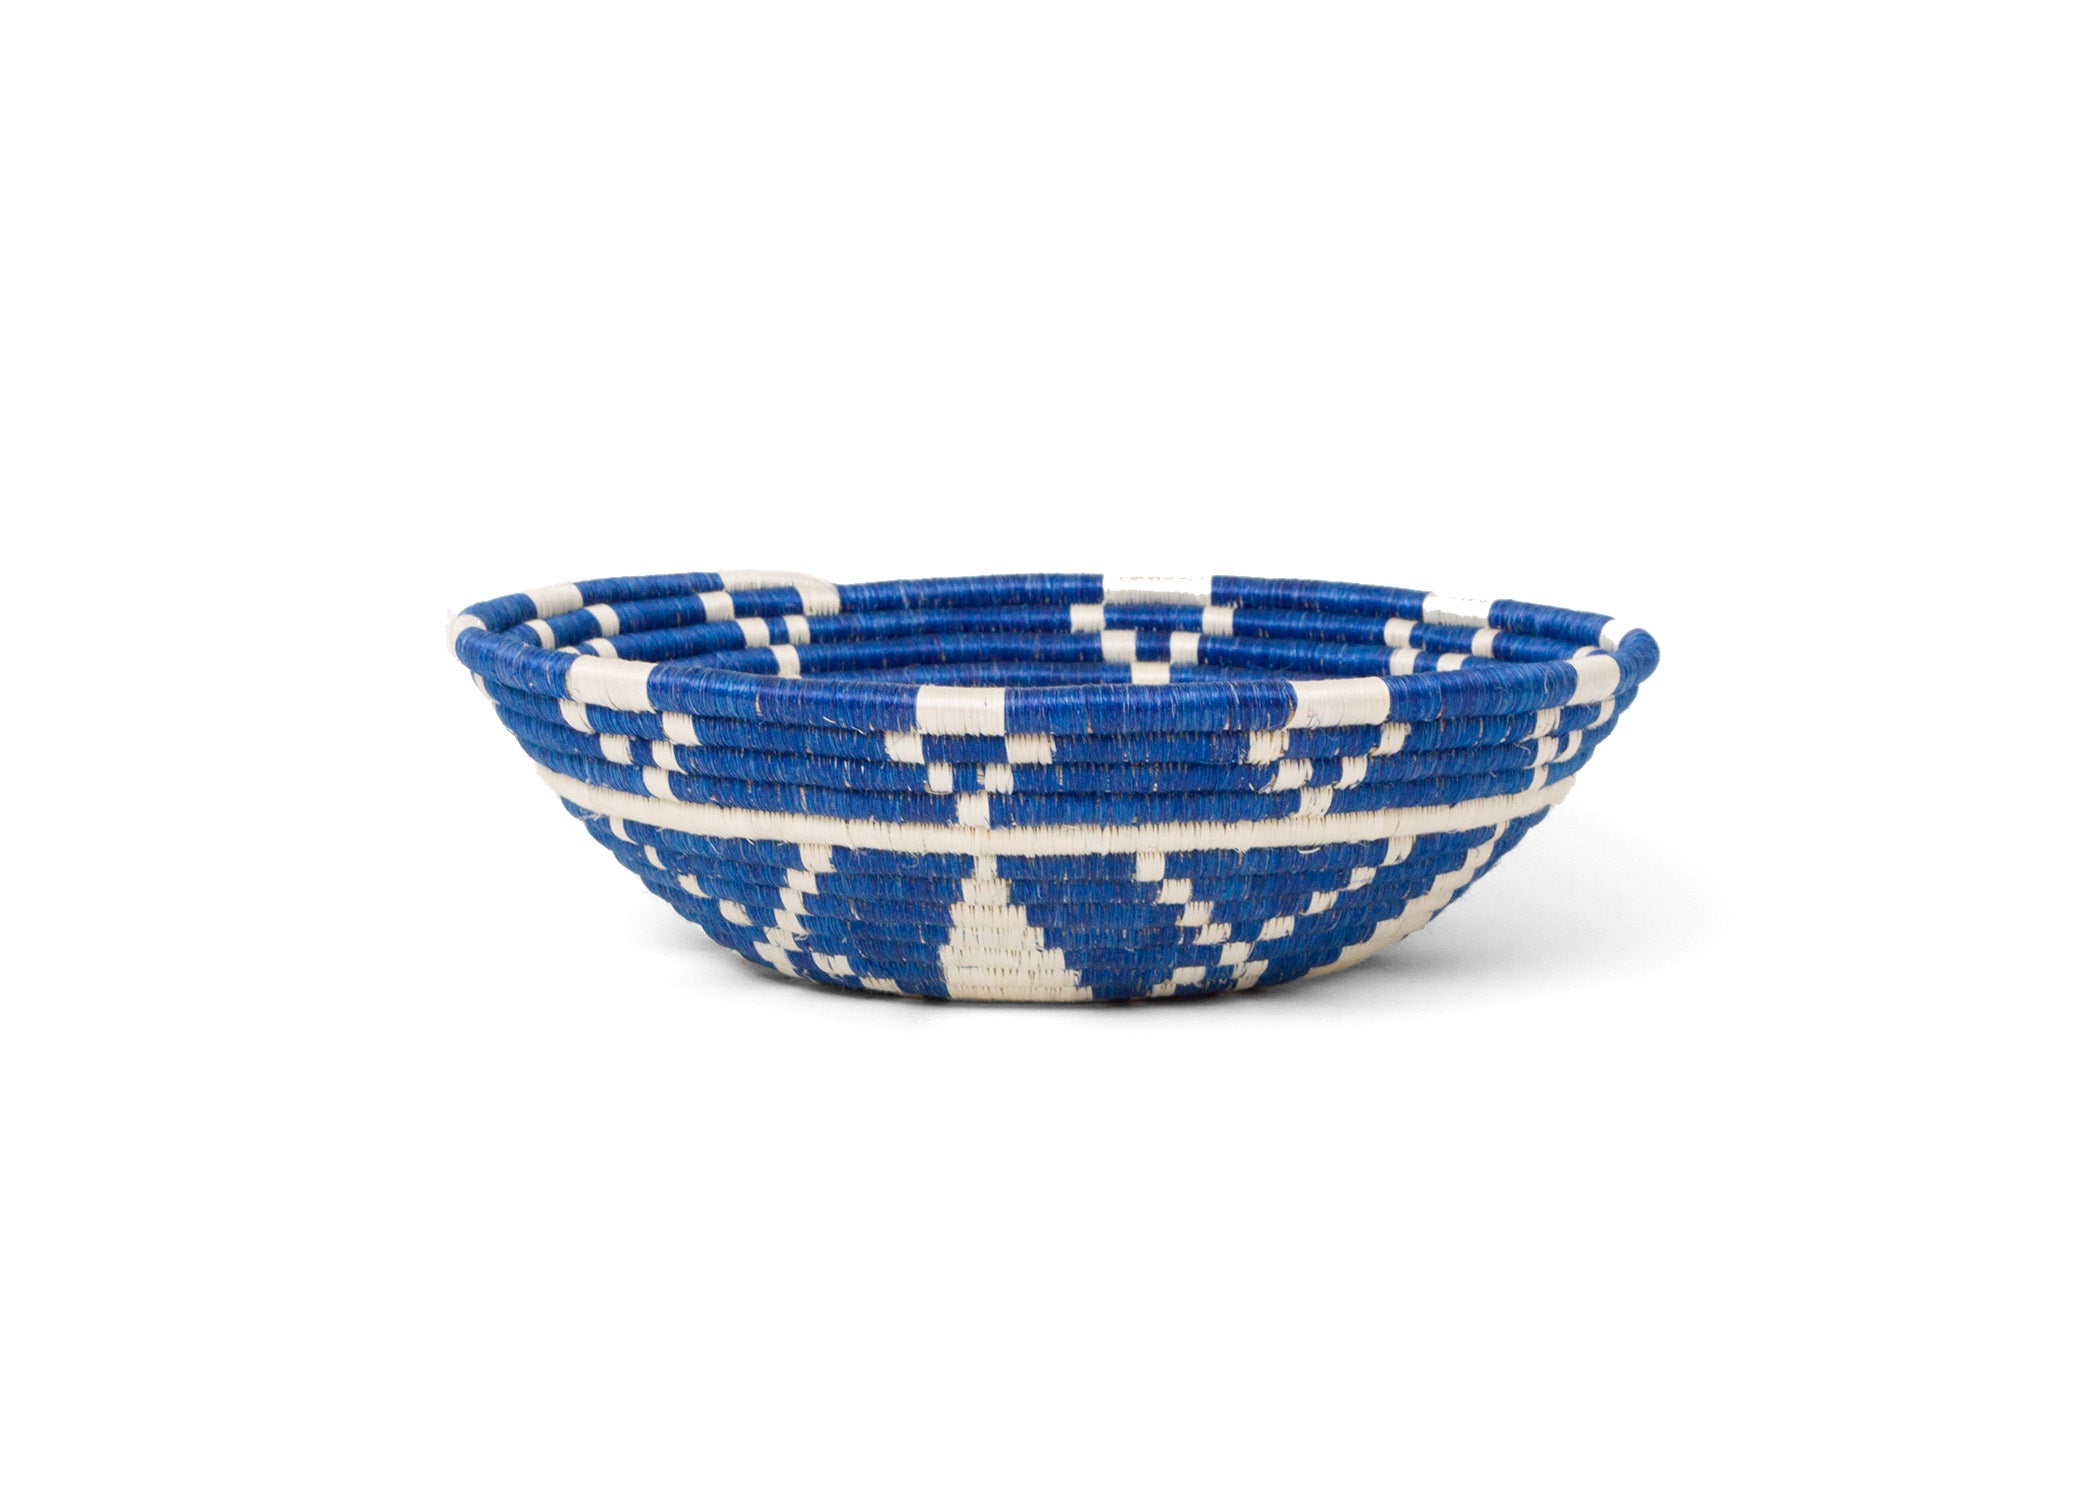 Extra Large Lake Kwizera Bowl - KAZI - Artisan made high quality home decor and wall art